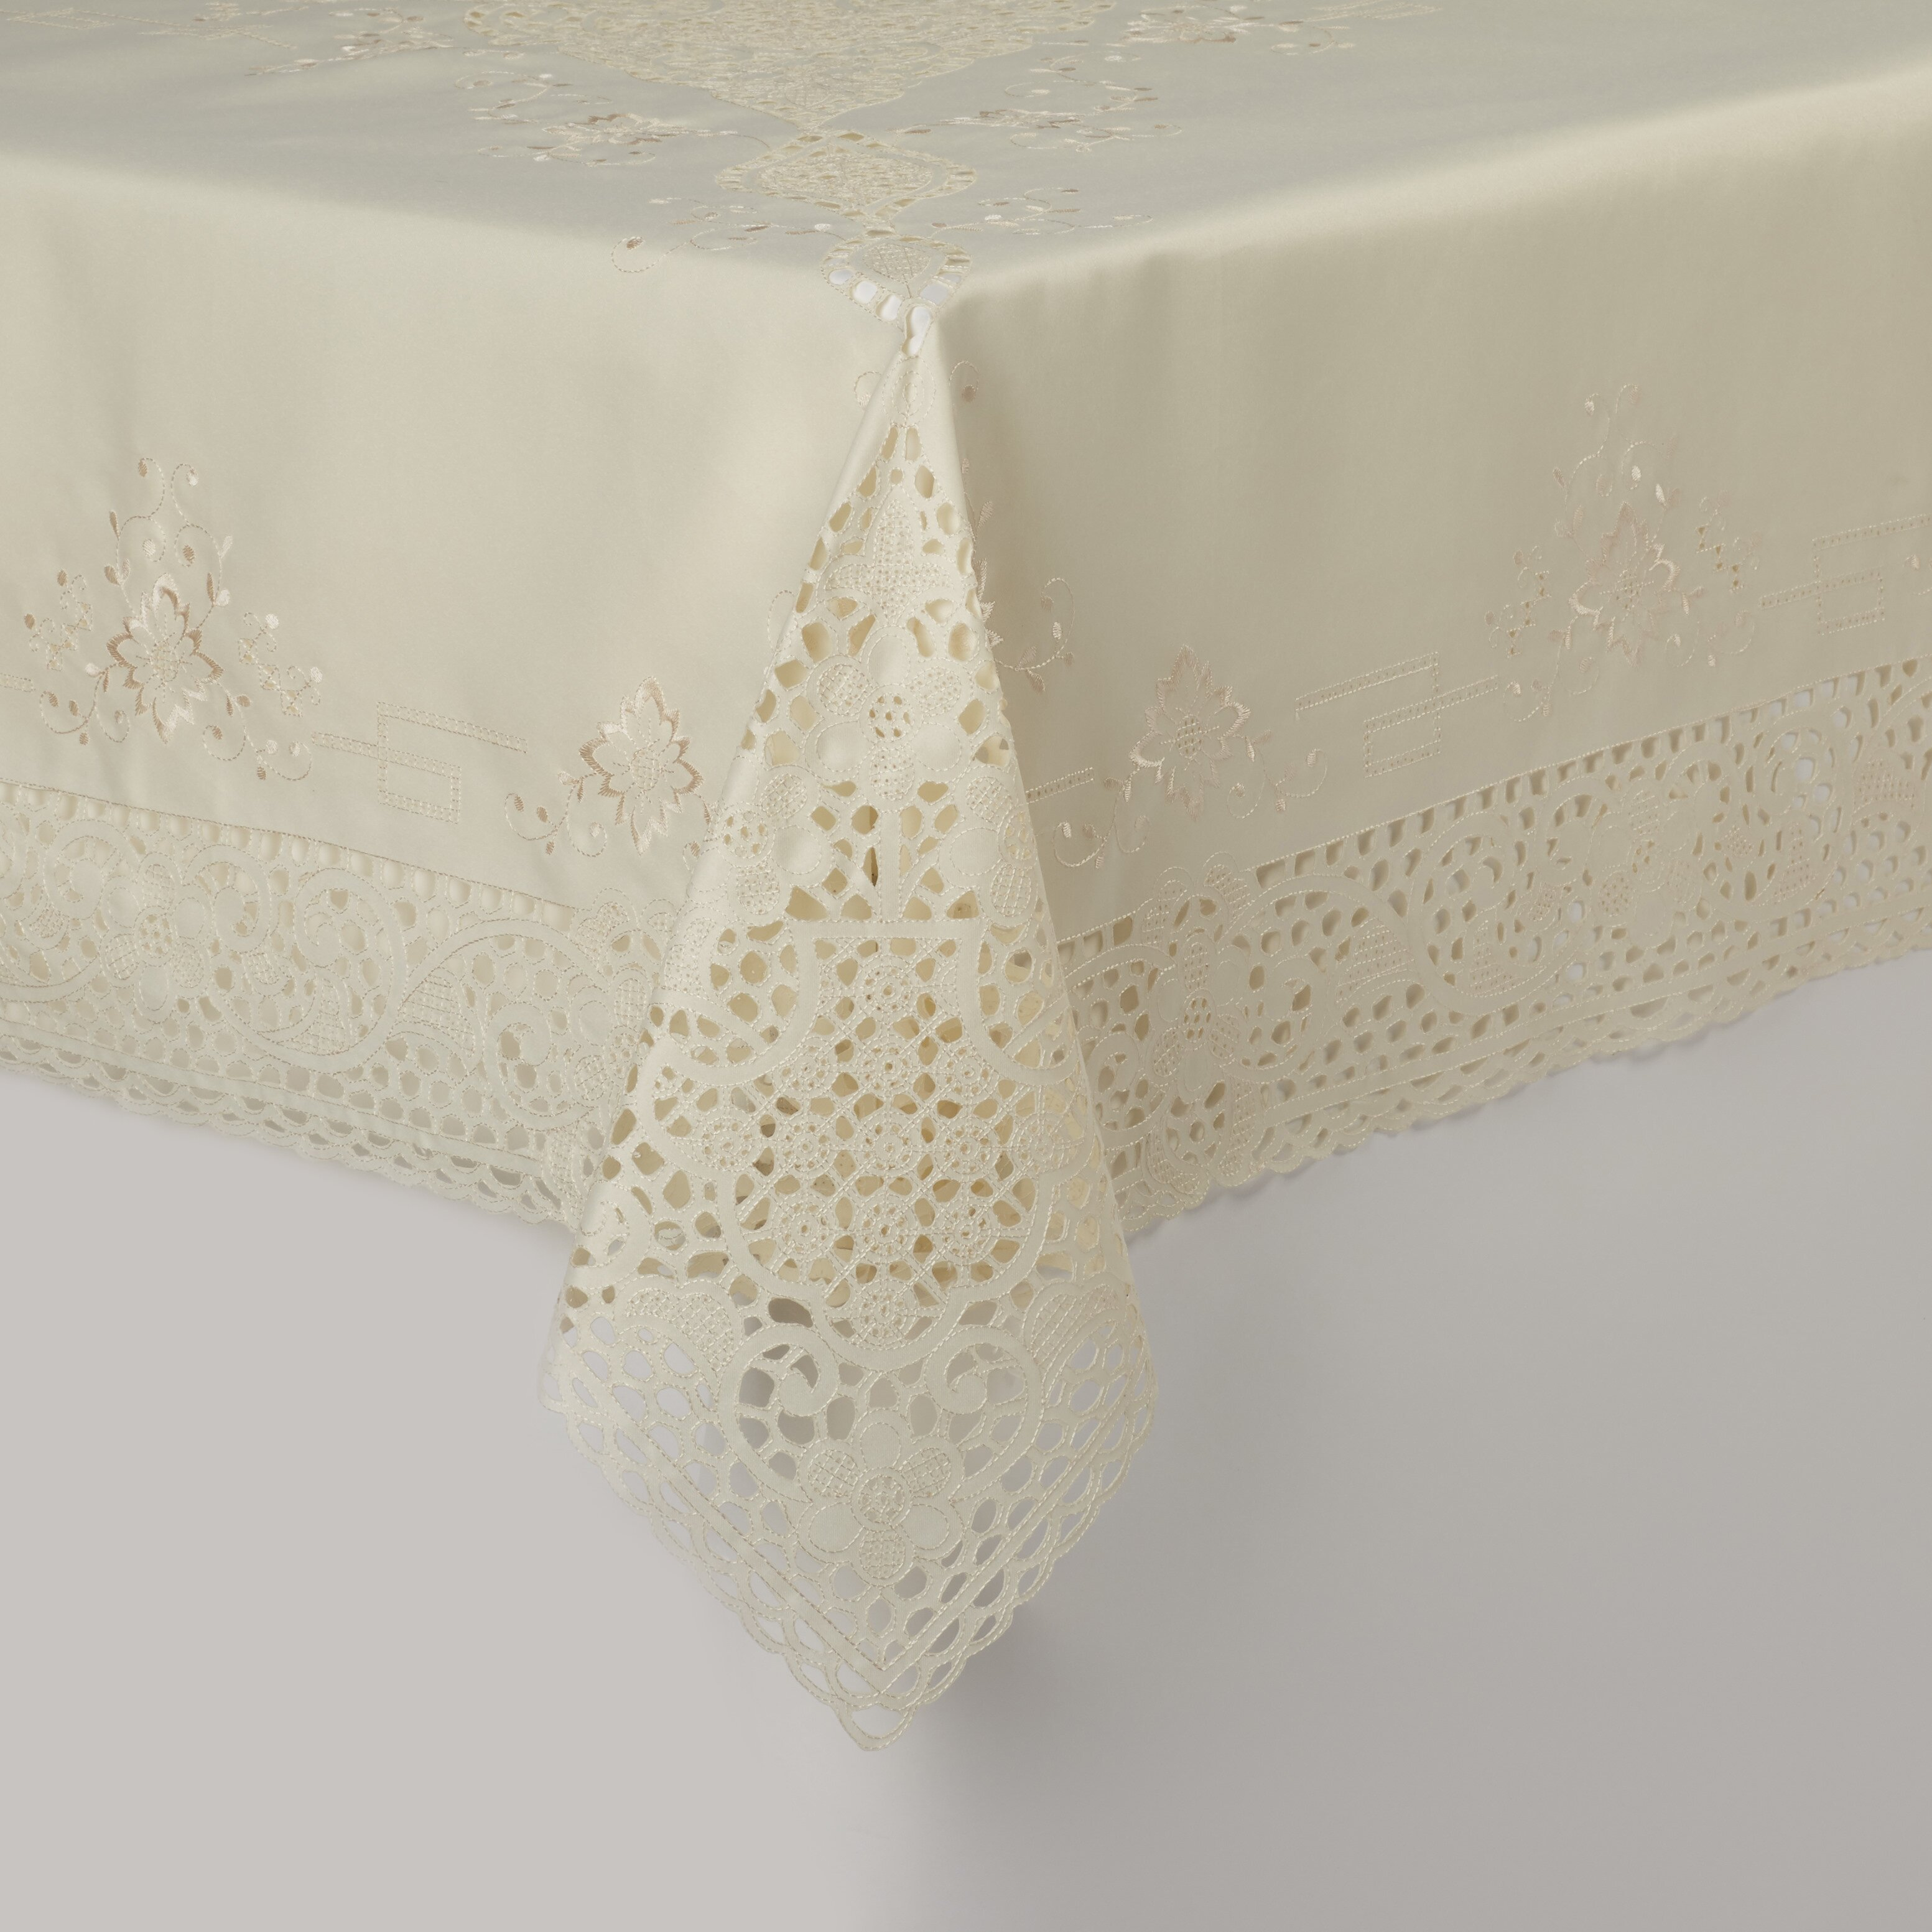 Saro embroidery cutwork vintage design tablecloth wayfair for Glass cut work designs